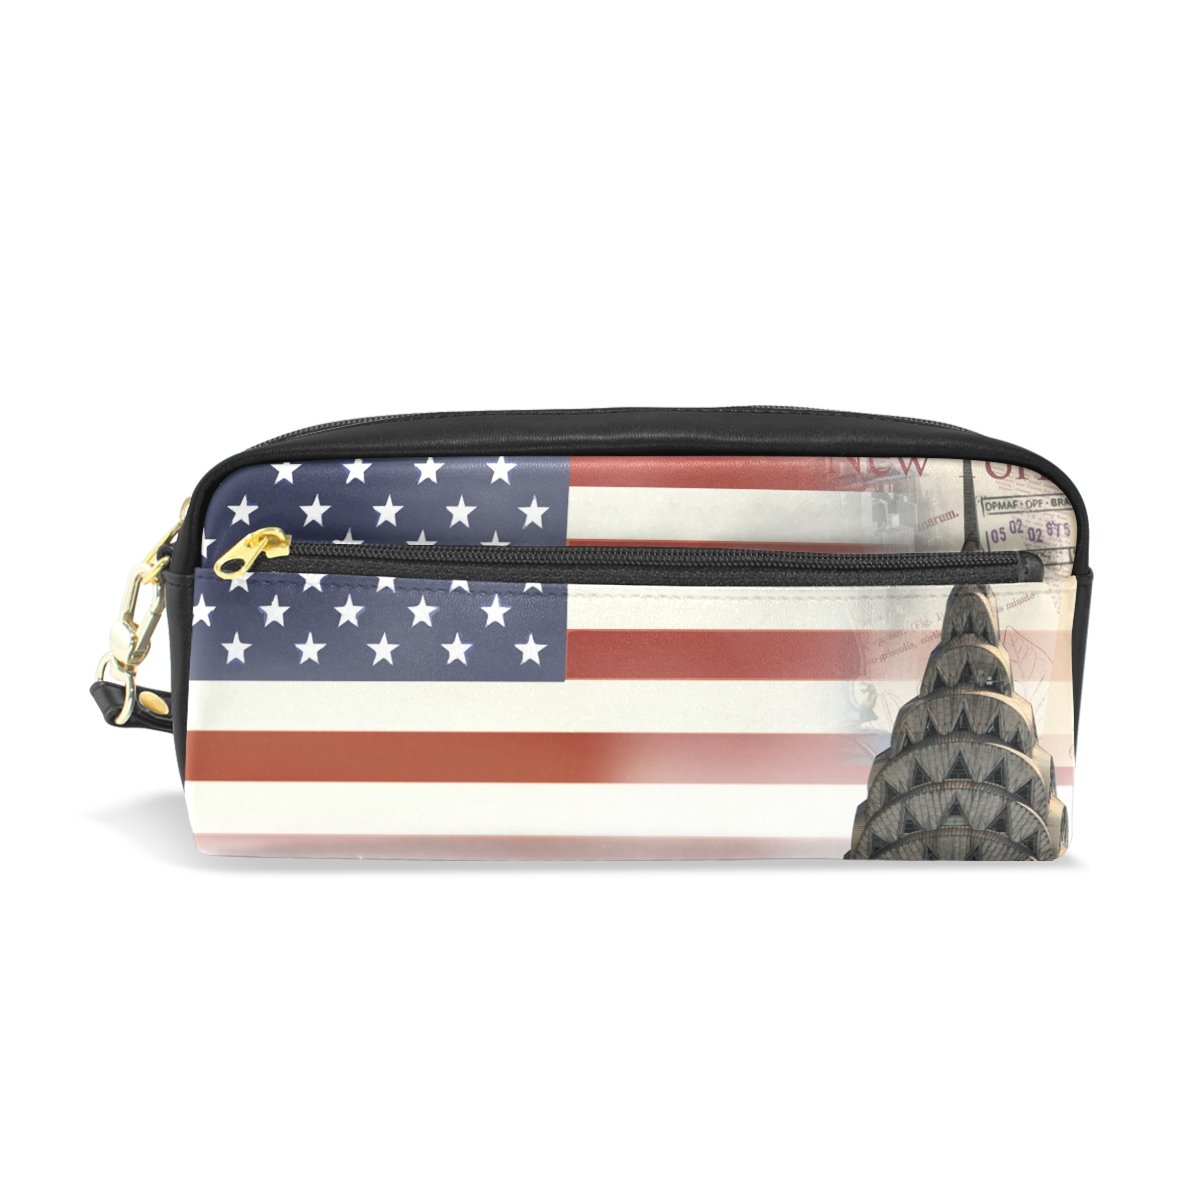 FeiHuang America Flag Leather Student Pencil Case Pen Cosmetic Bag for Girls Customized Makeup Pouch